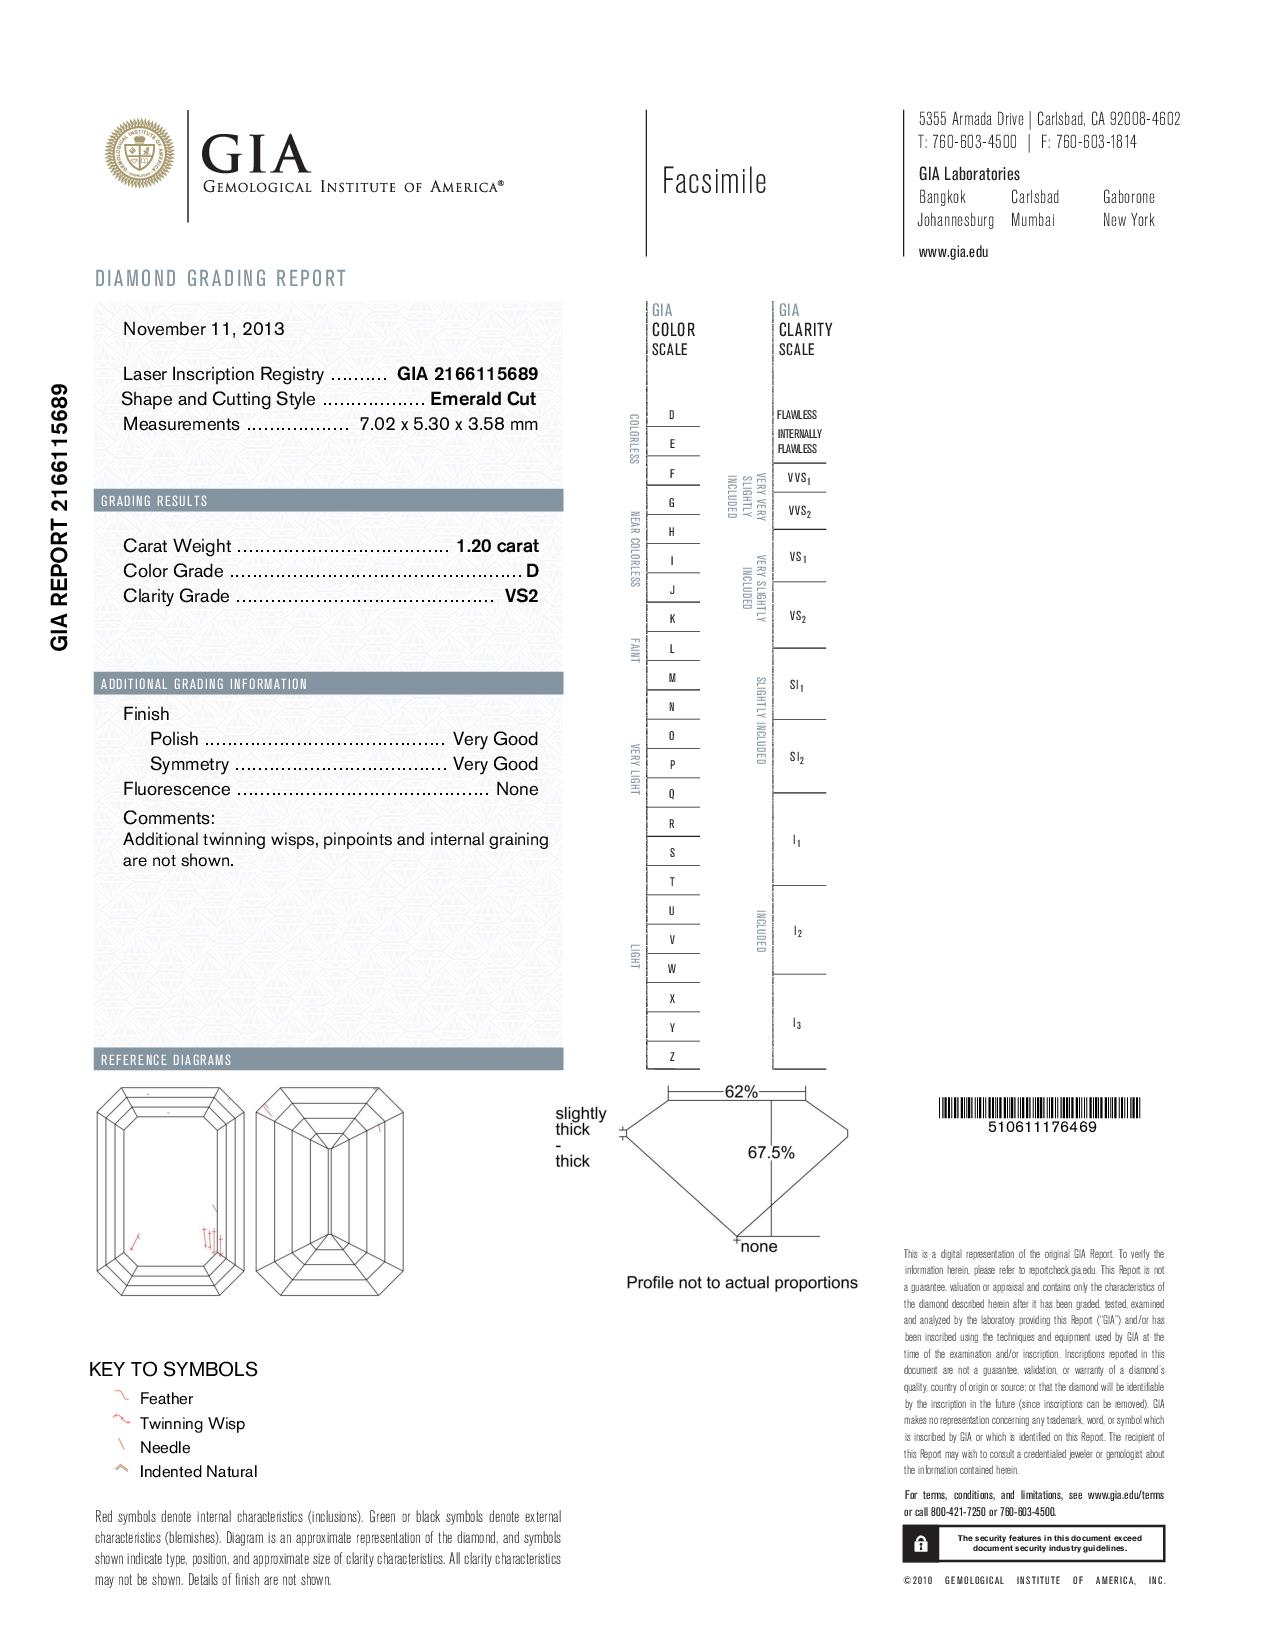 This is a 1.20 carat emerald shape, D color, VS2 clarity natural diamond accompanied by a GIA grading report.